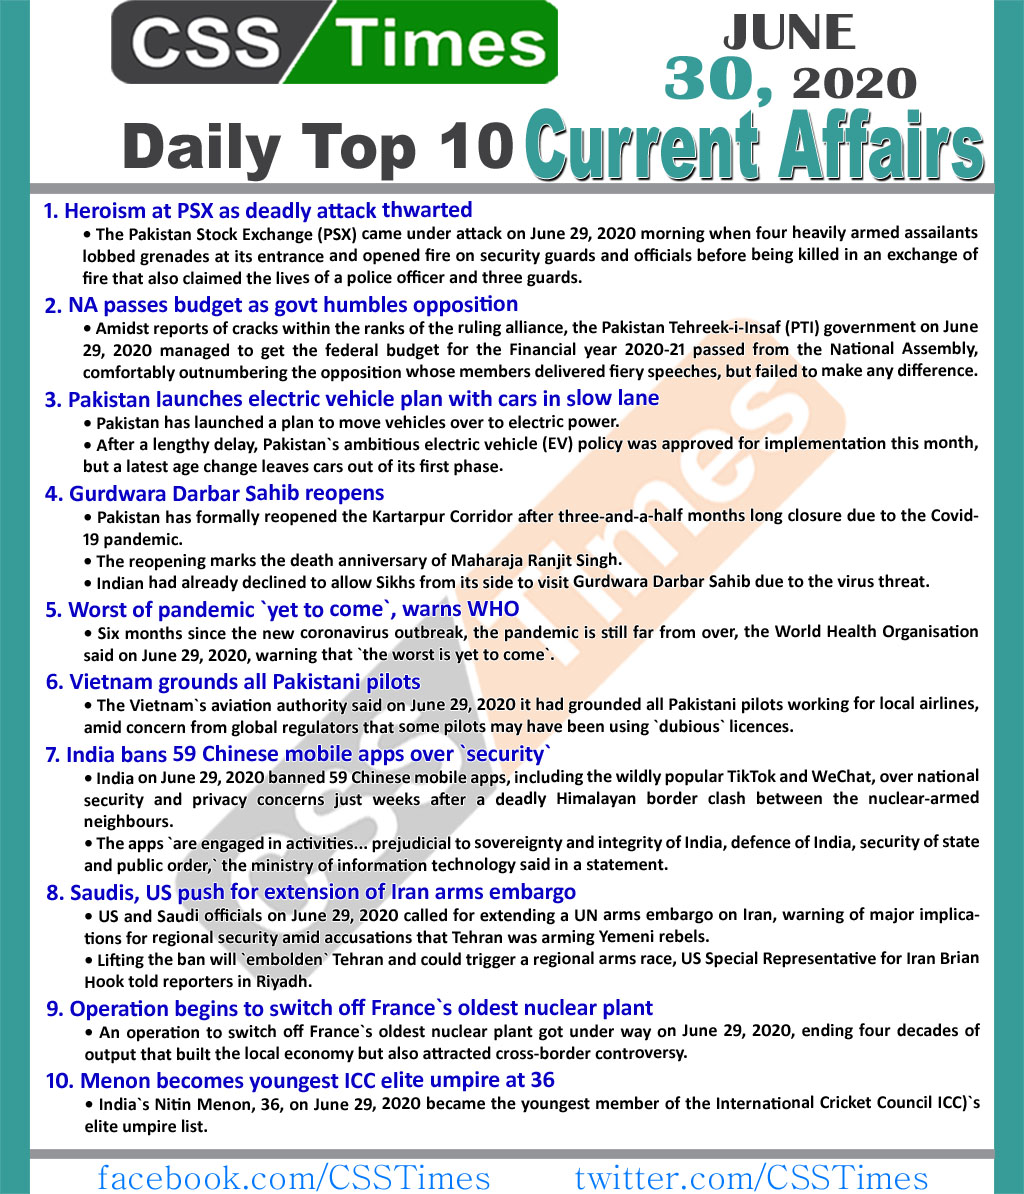 Daily Top-10 Current Affairs MCQs / News (June 30, 2020) for CSS, PMS